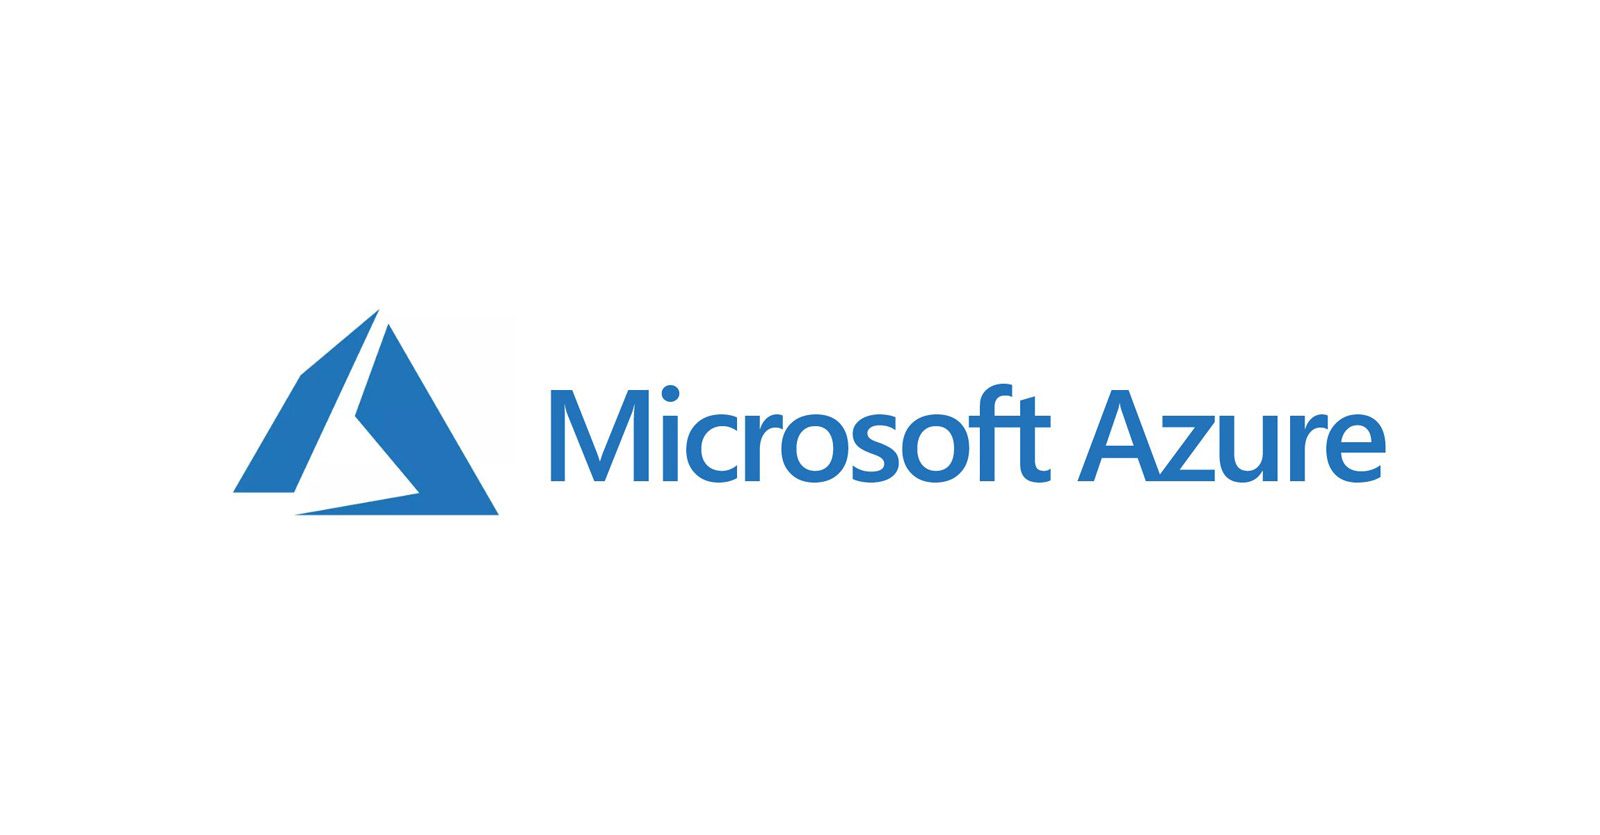 Features of Microsoft Azure Software